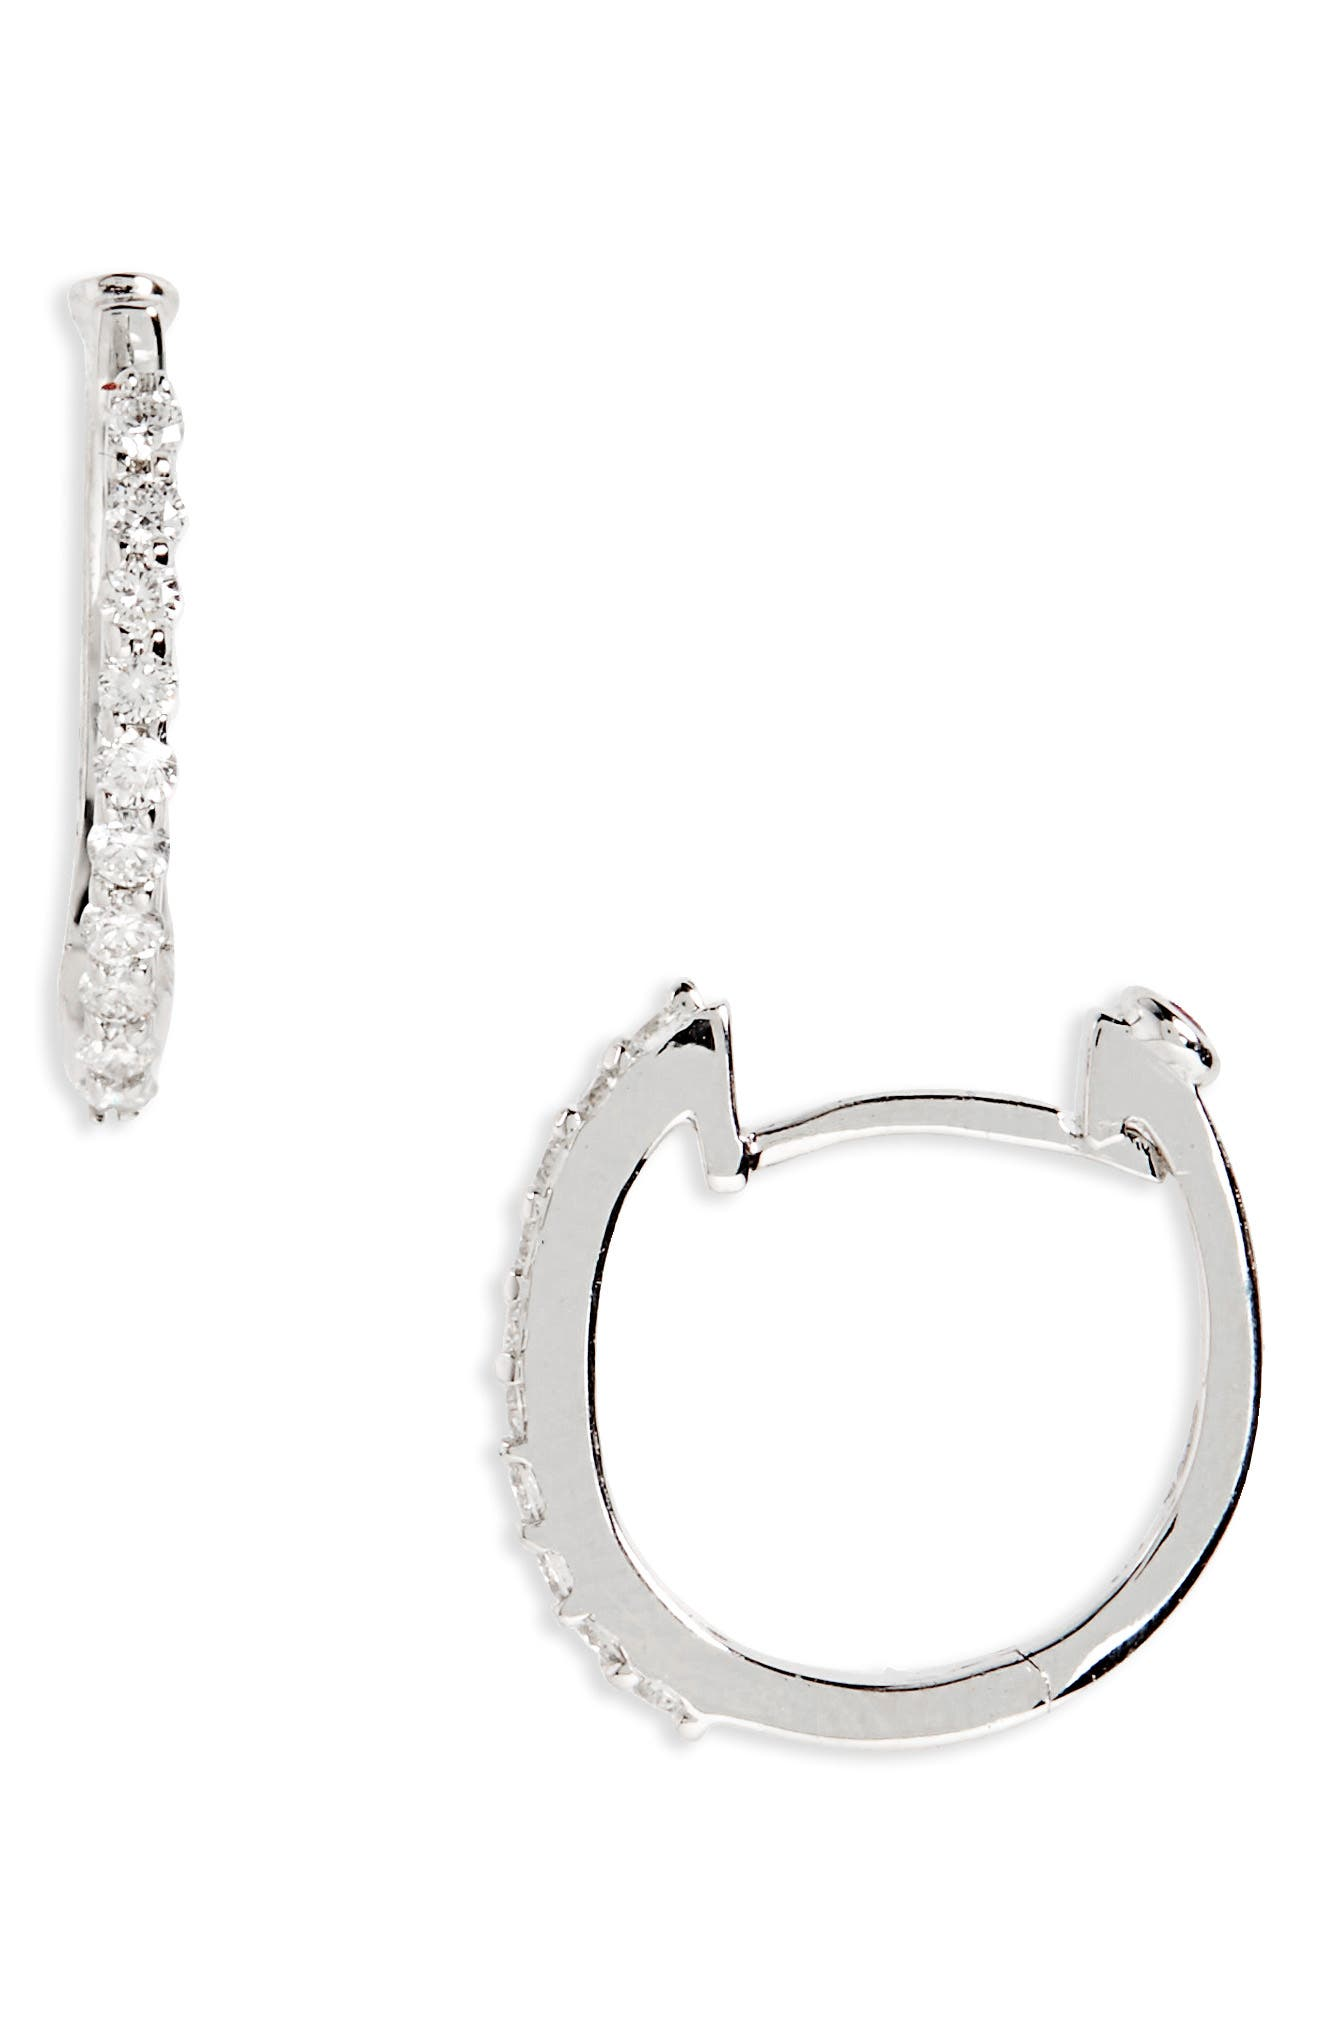 Alternate Image 1 Selected - Roberto Coin Small Diamond Hoop Earrings